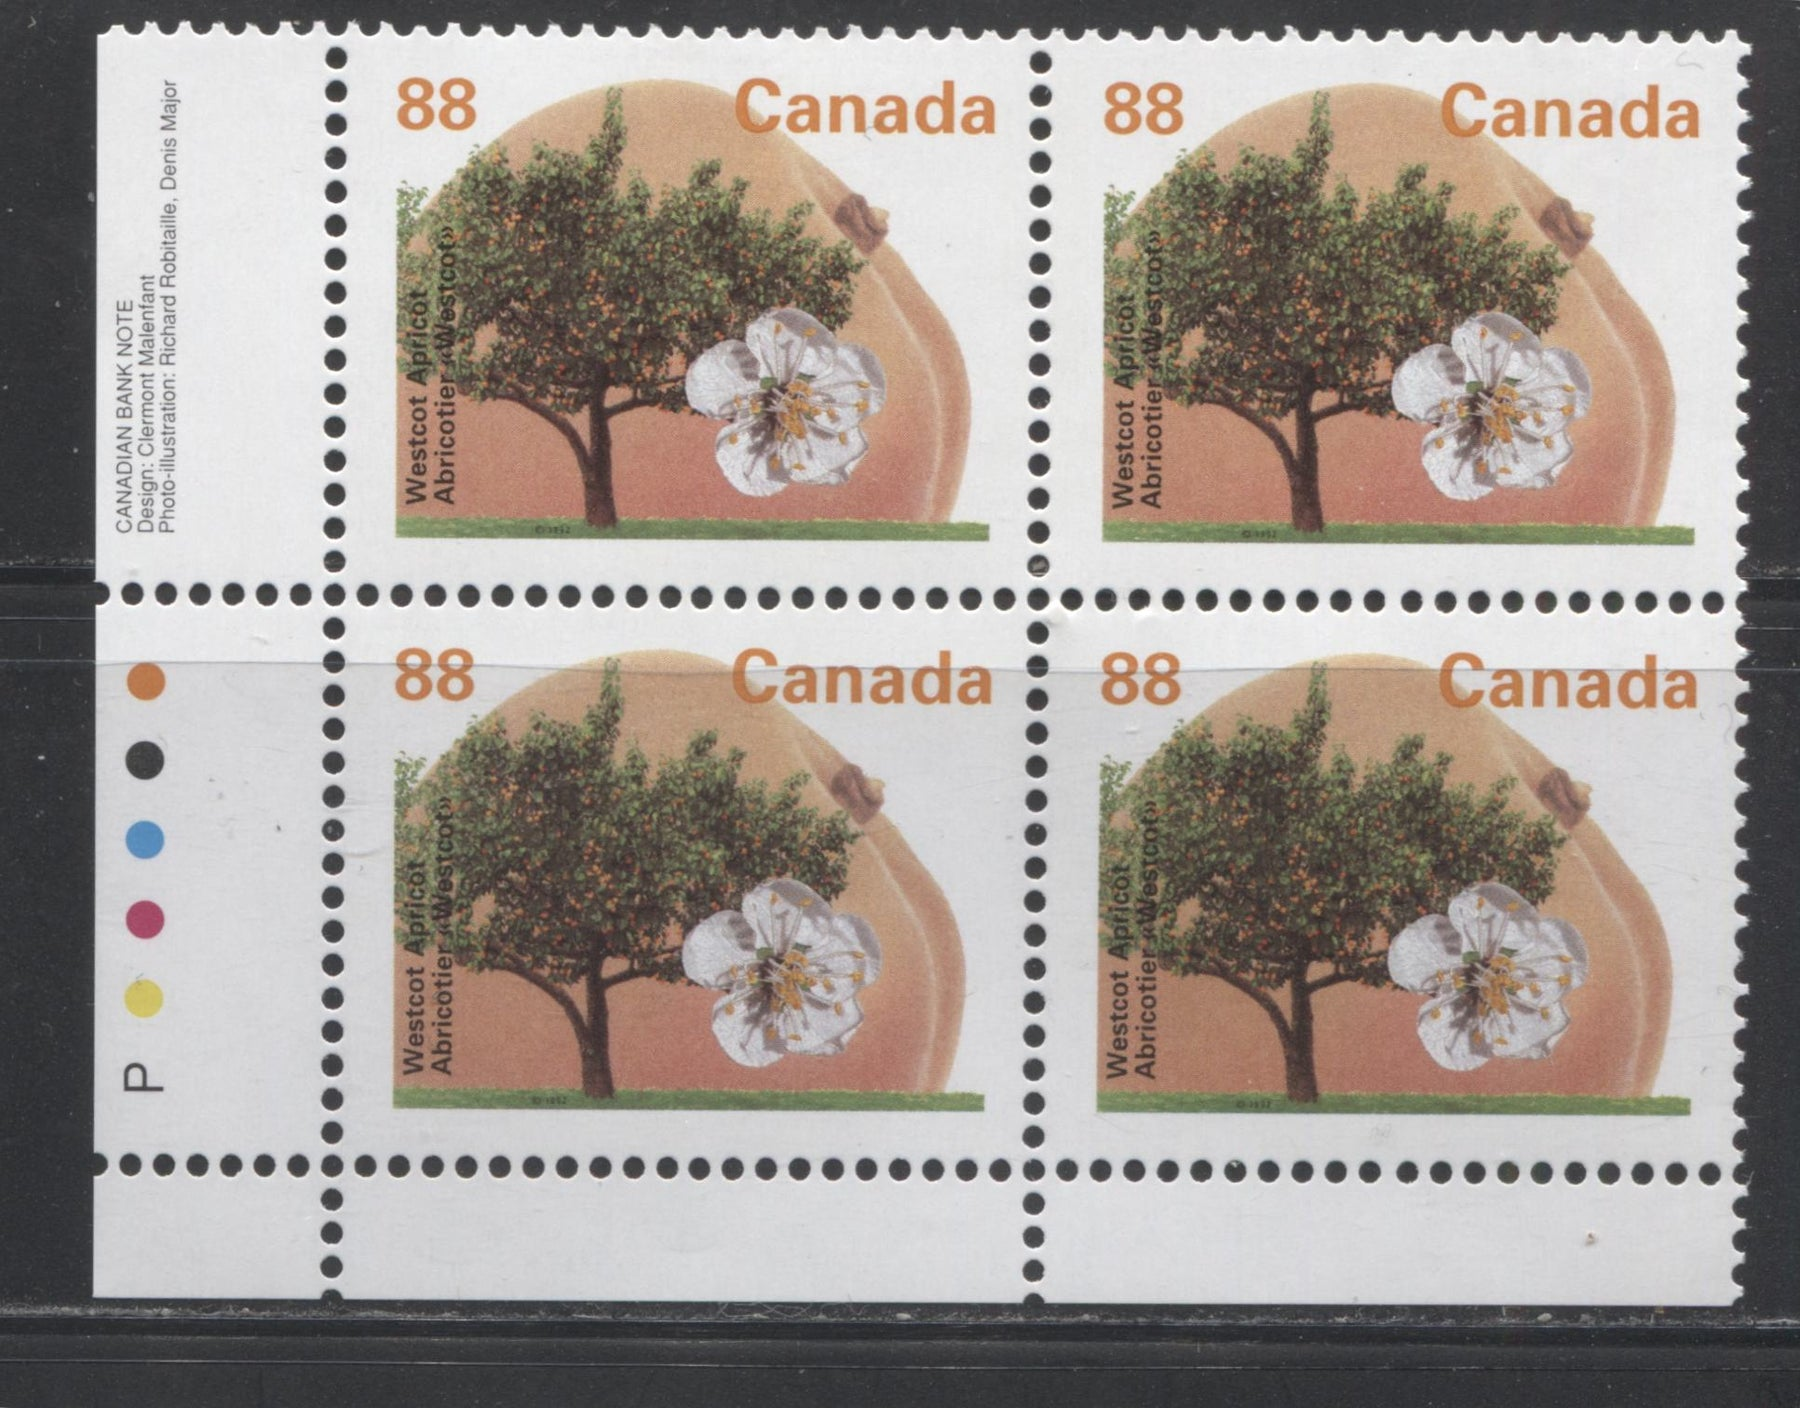 Canada #1373 88c Westcot Apricot, 1991-1998 Fruit & Flag Definitive Issue, A VFNH LL Inscription Block, Perf. 13.1 on LF/MF Peterborough Paper, GT-4 Tagging